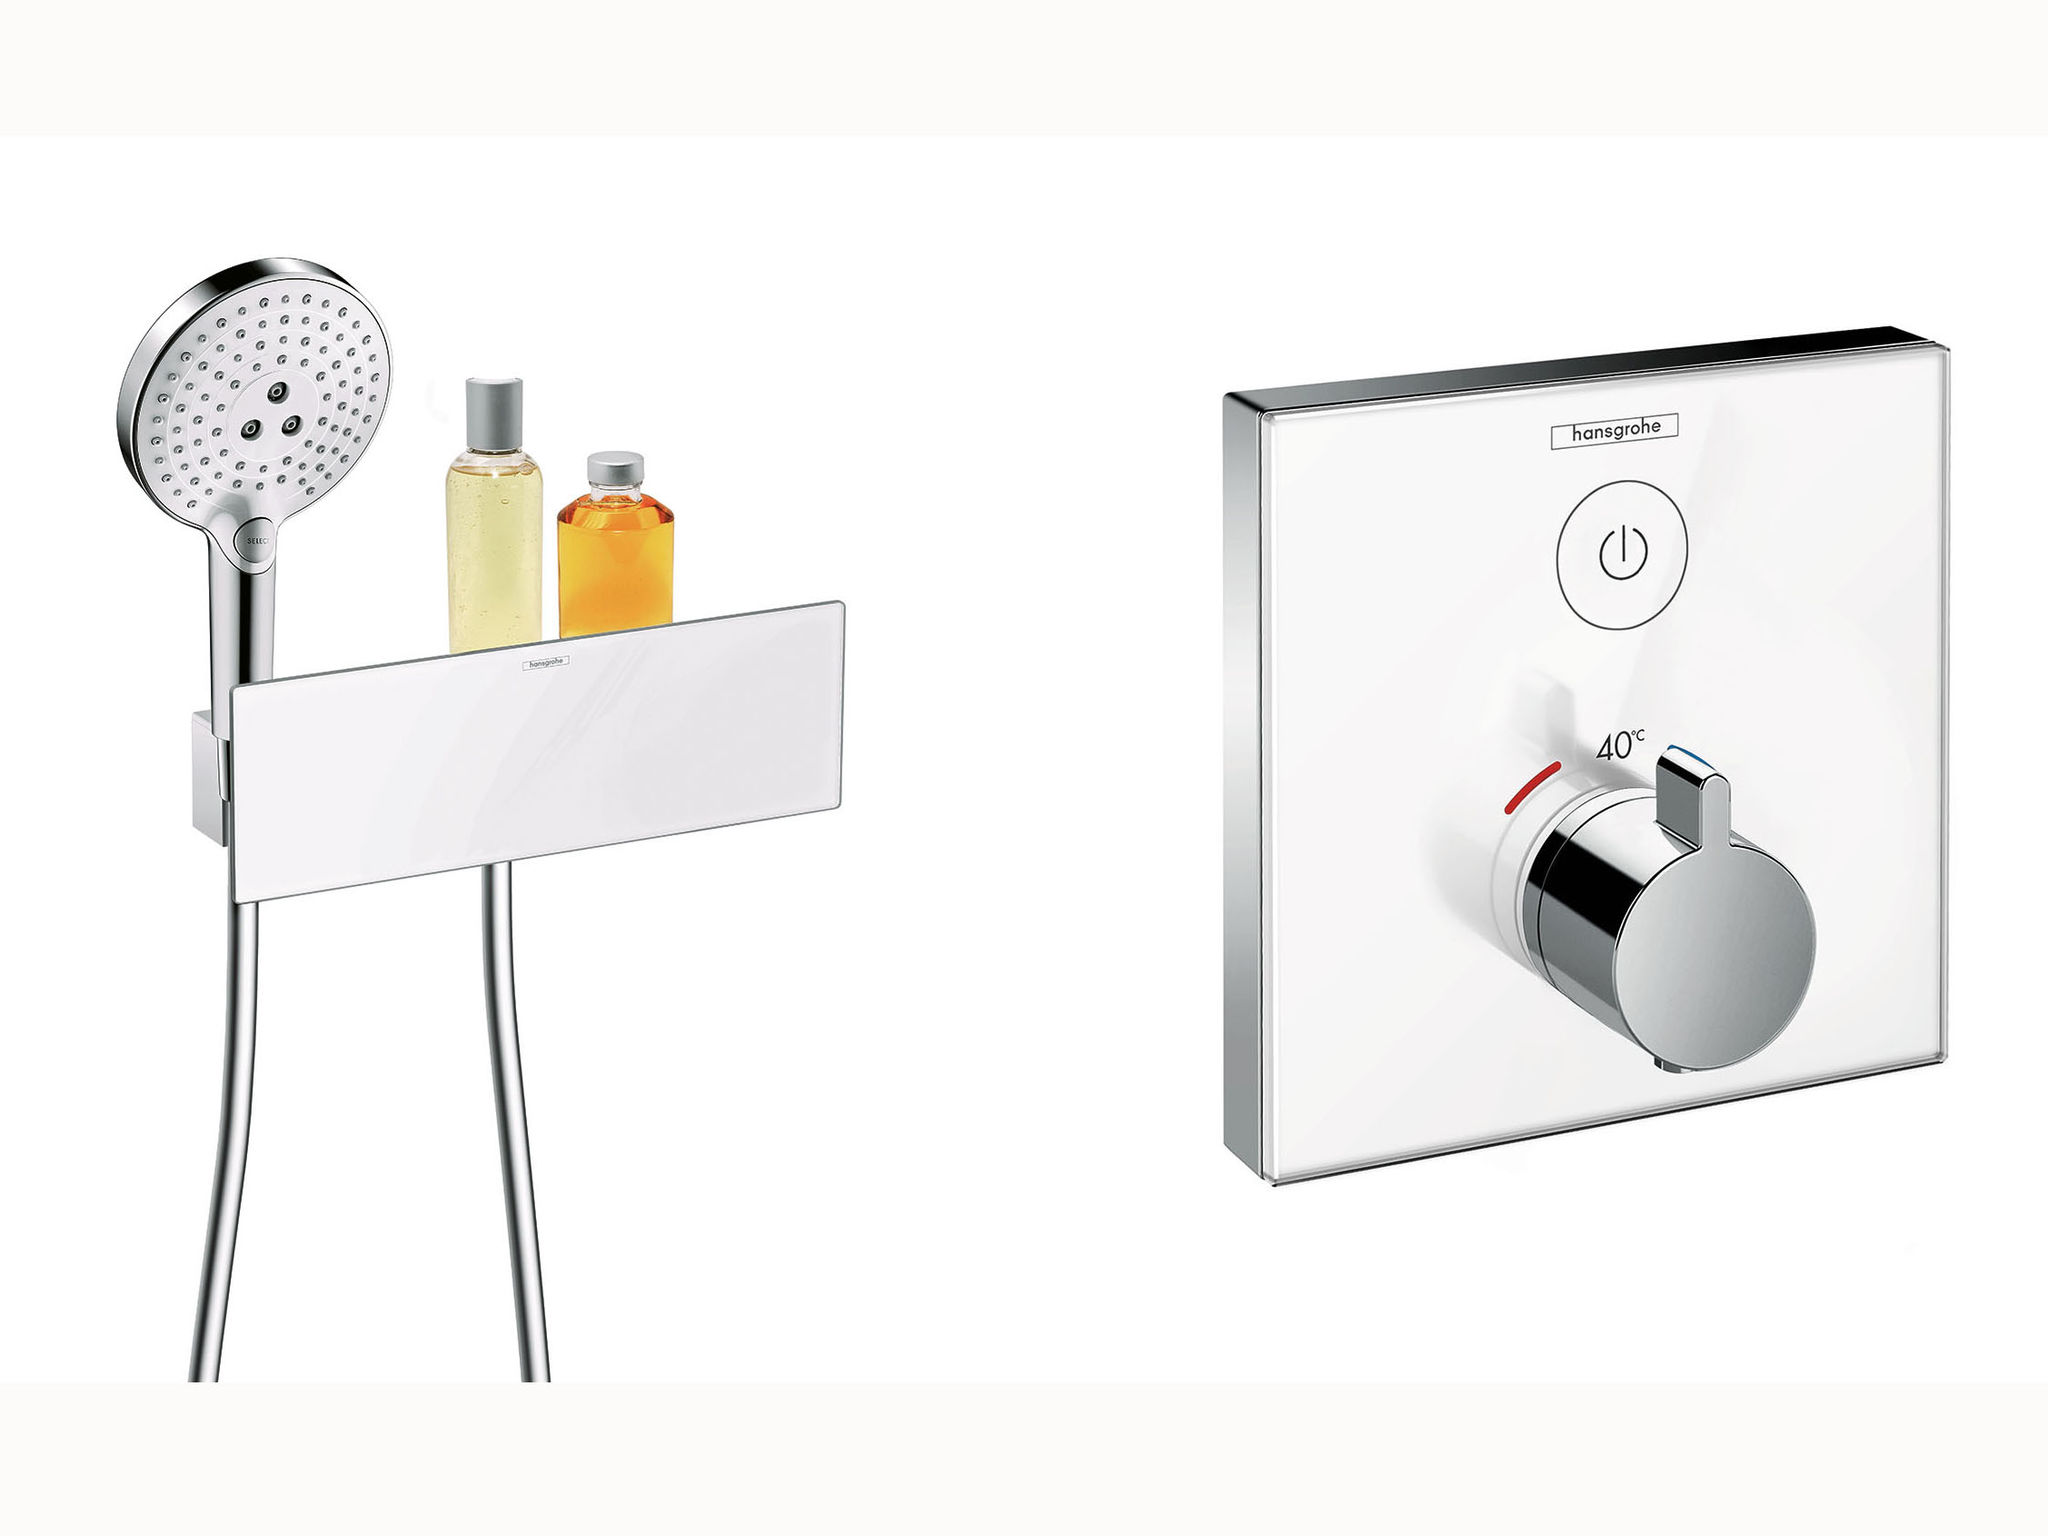 hansgrohe FixFit Porter 300 - Entry - iF WORLD DESIGN GUIDE